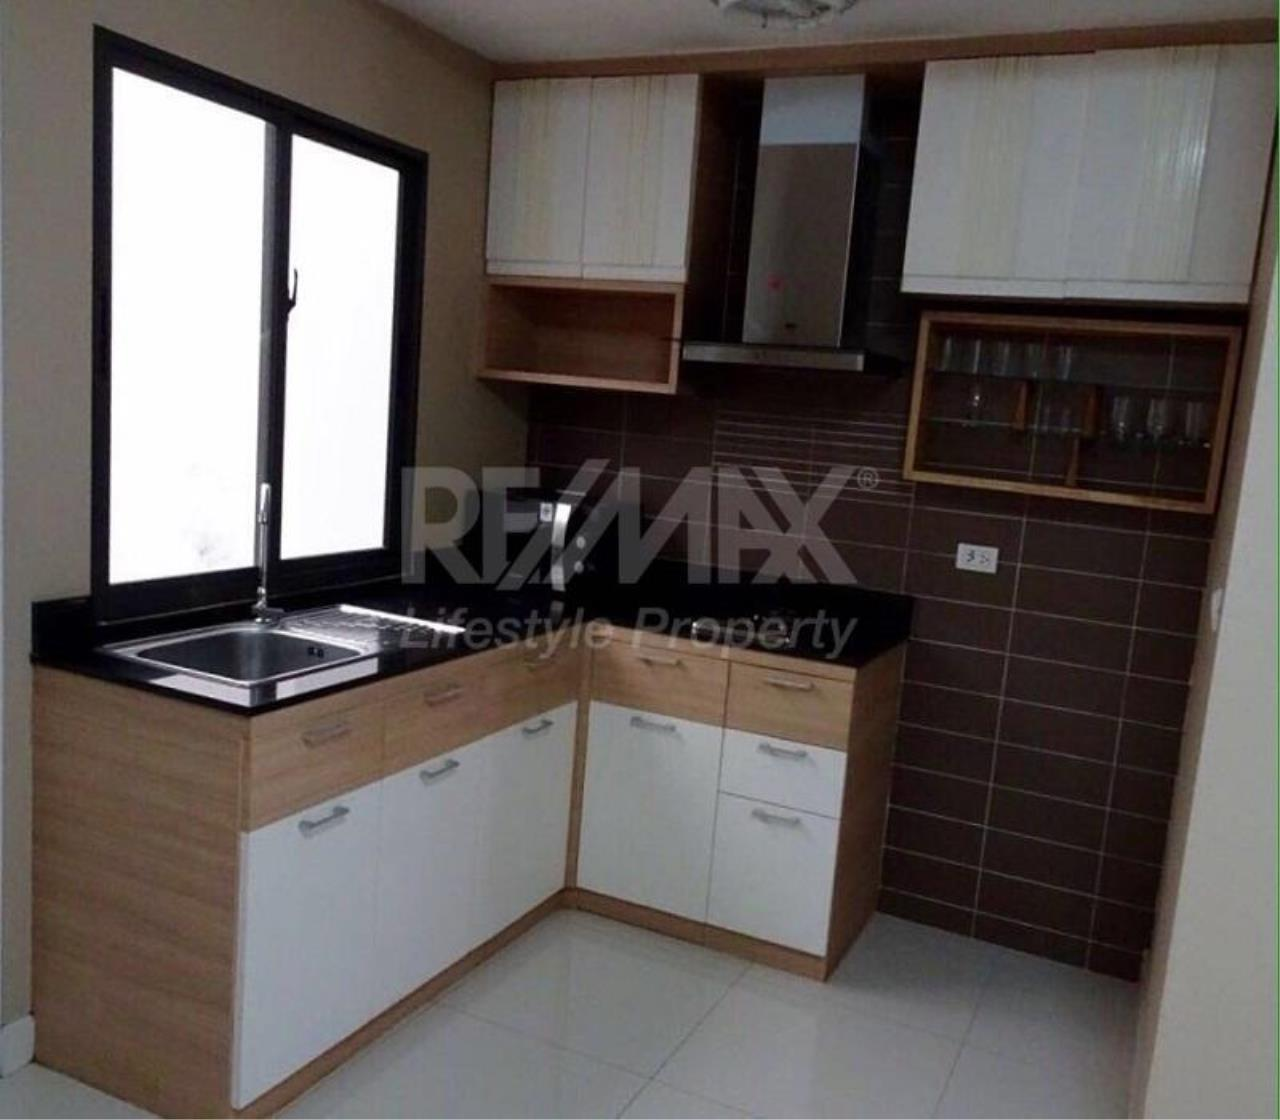 RE/MAX LifeStyle Property Agency's Town House Sukhumvit 77 17